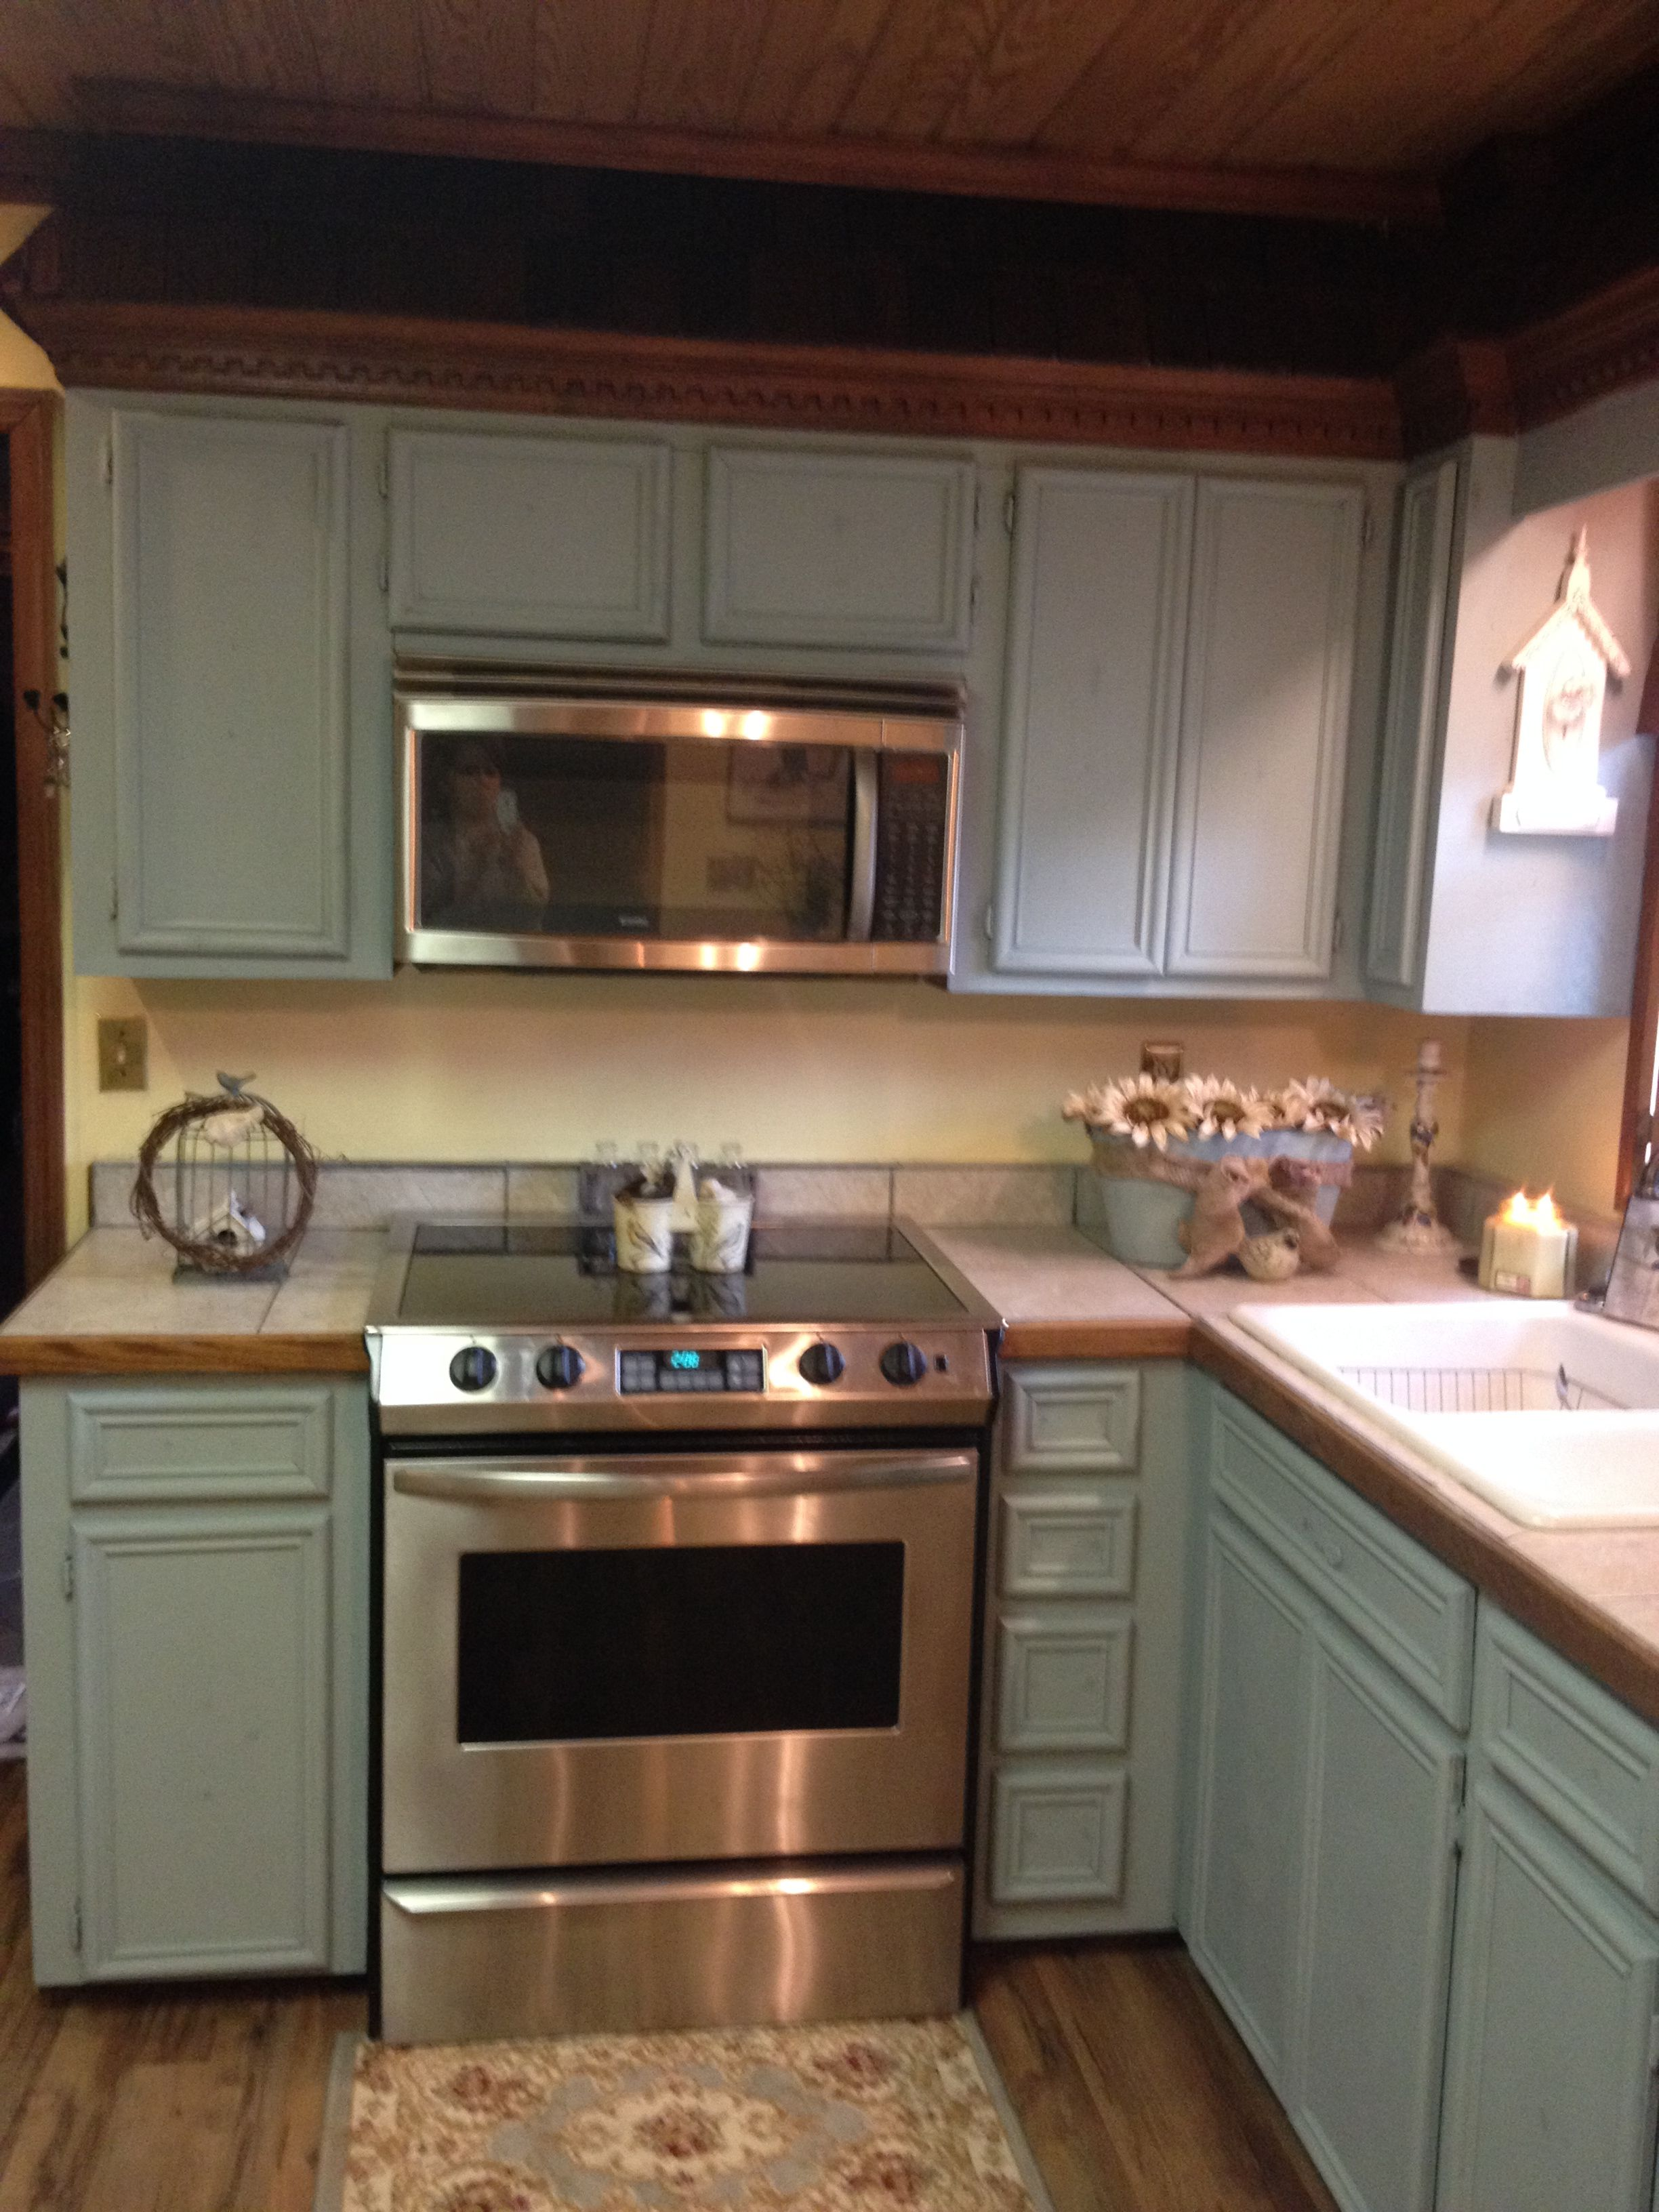 Updating My Old Oak Cabinets To Anne Sloan Chalk Paint Duck Egg Blue